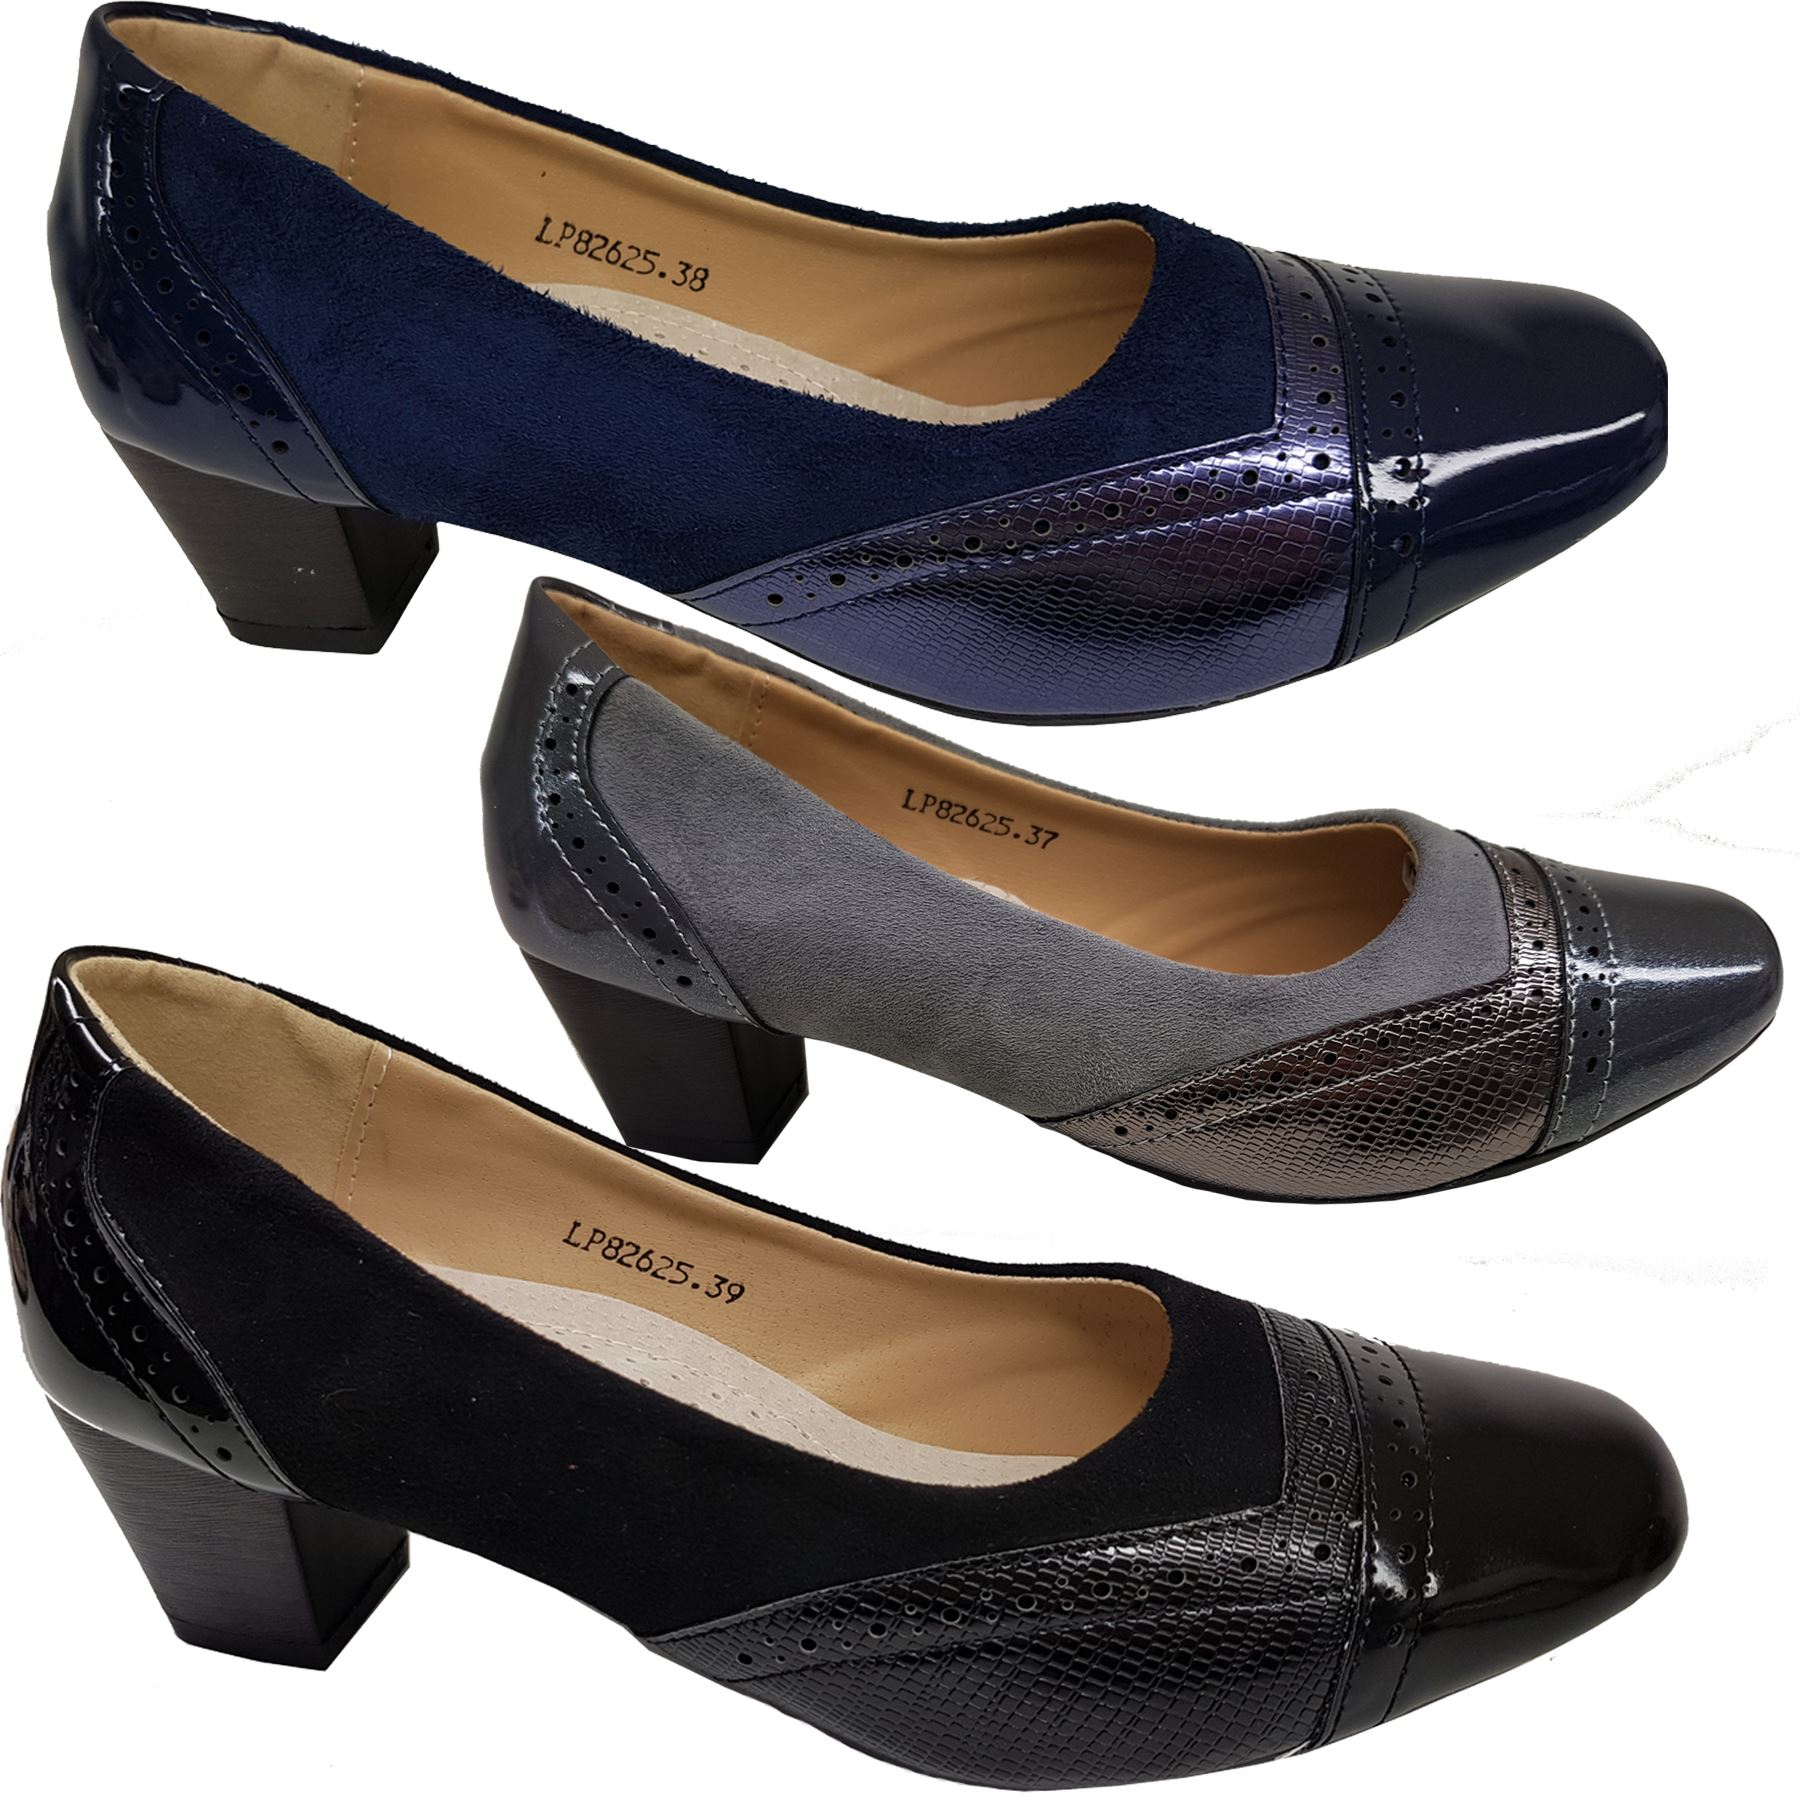 Black Blue Faux Suede Shoes High Heel Size 3 4 party office work